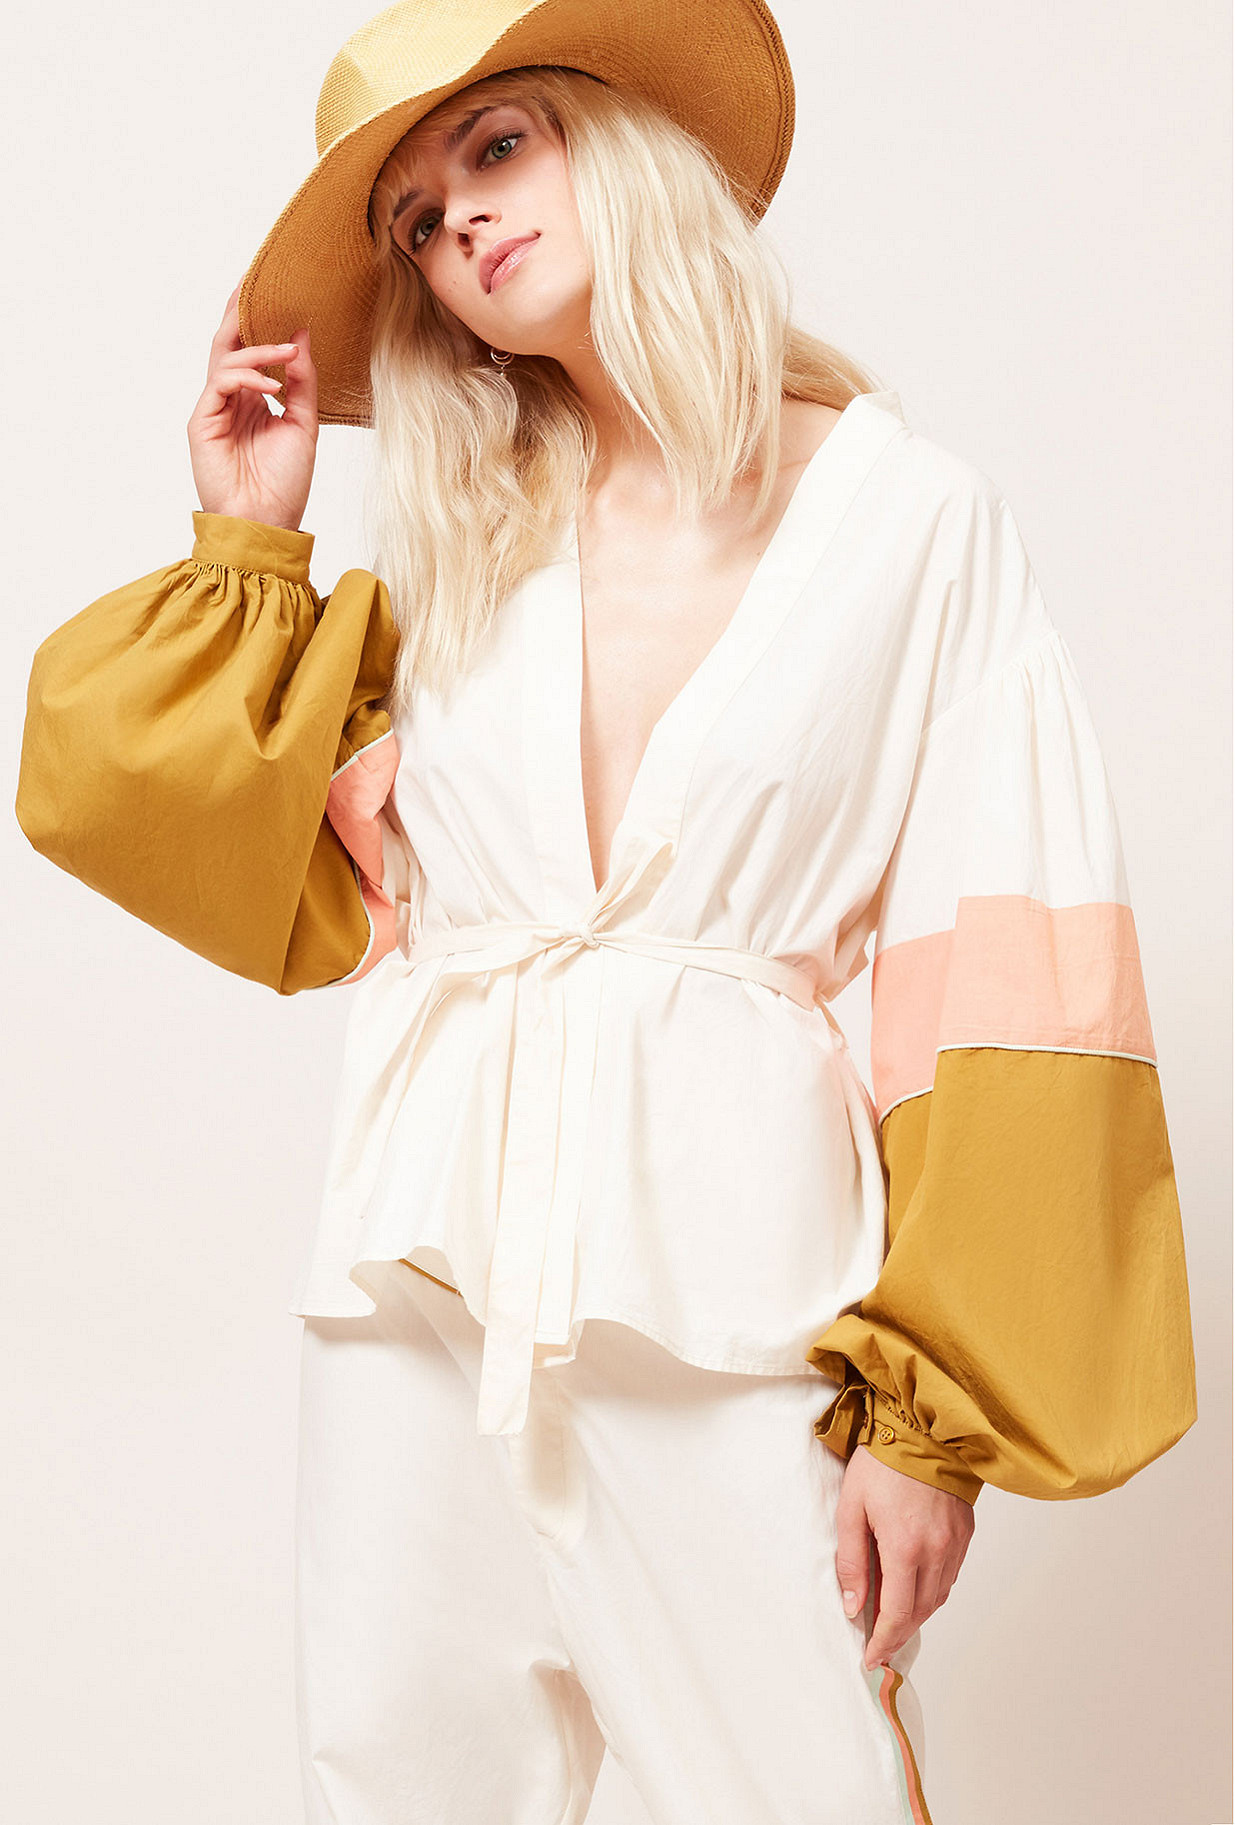 Paris clothes store Kimono  Protis french designer fashion Paris